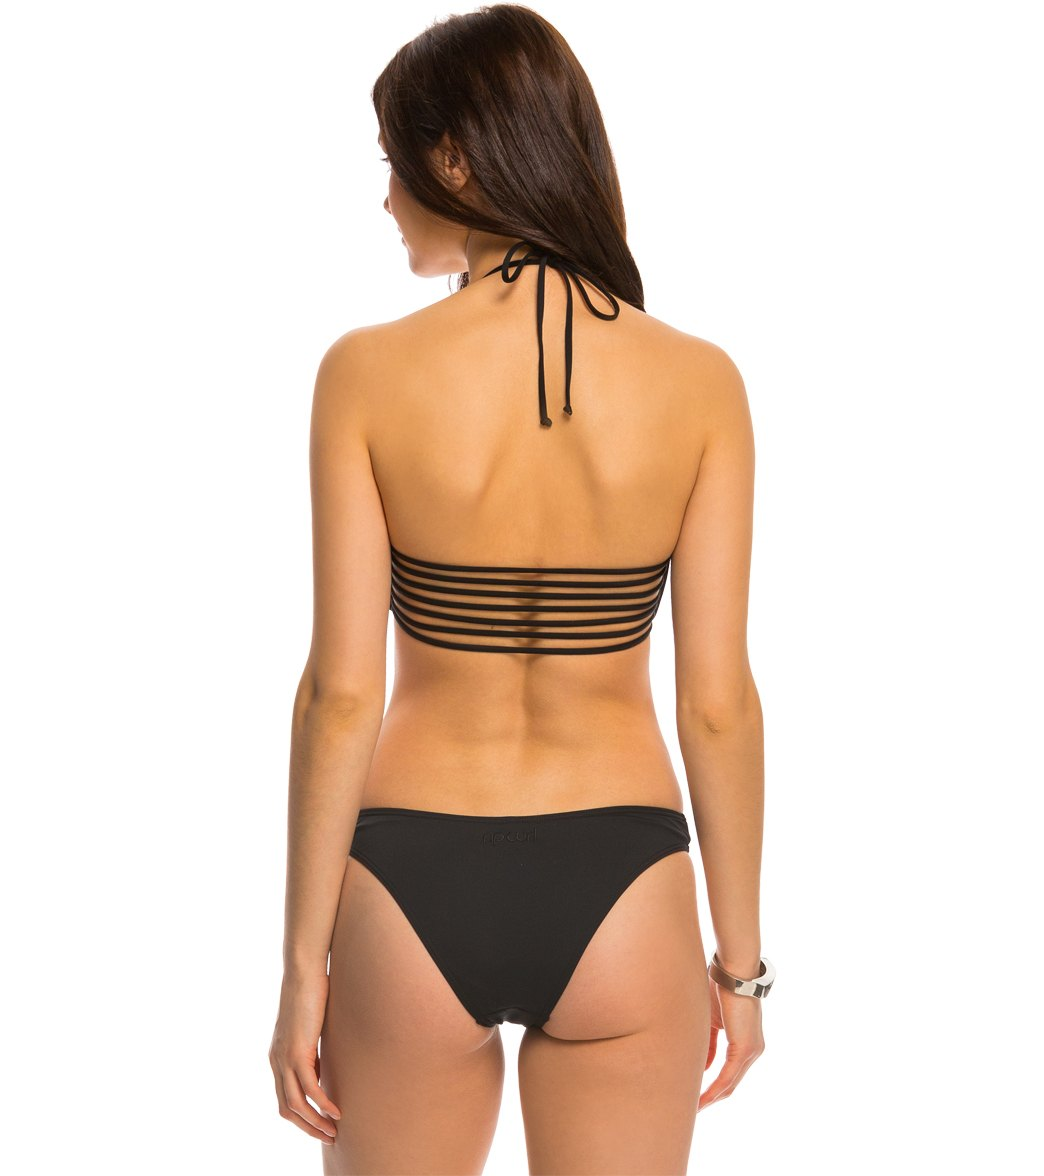 cef3d6340e336 Rip Curl Swimwear Love N Surf One Piece Swimsuit at SwimOutlet.com ...